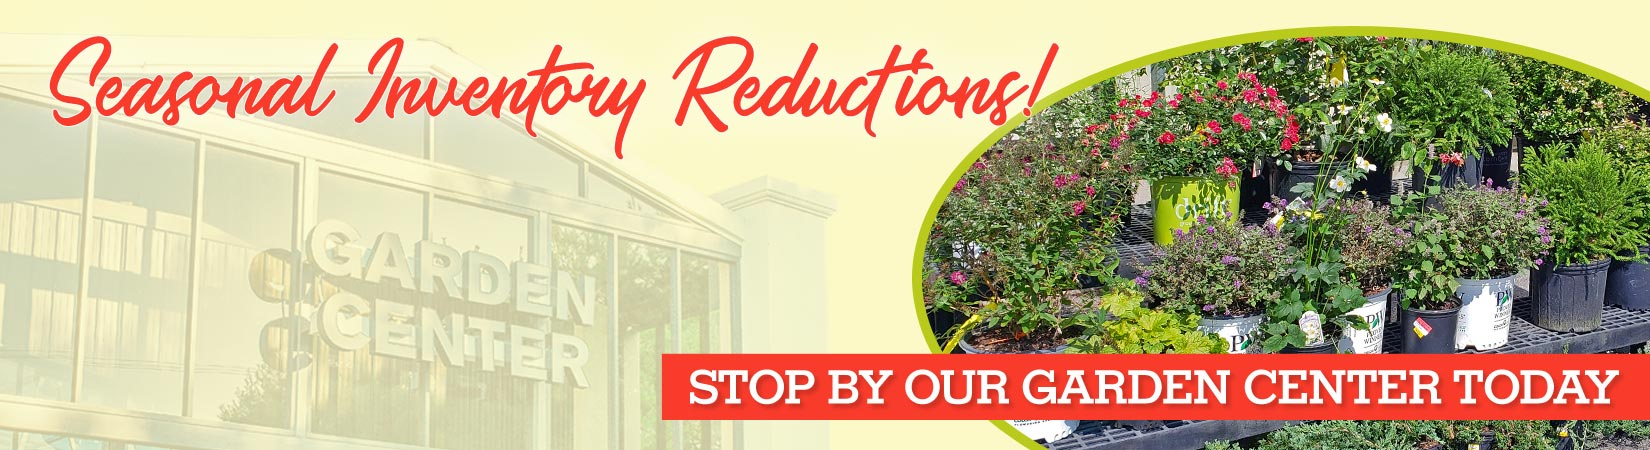 garden center seasonal inventory reduction